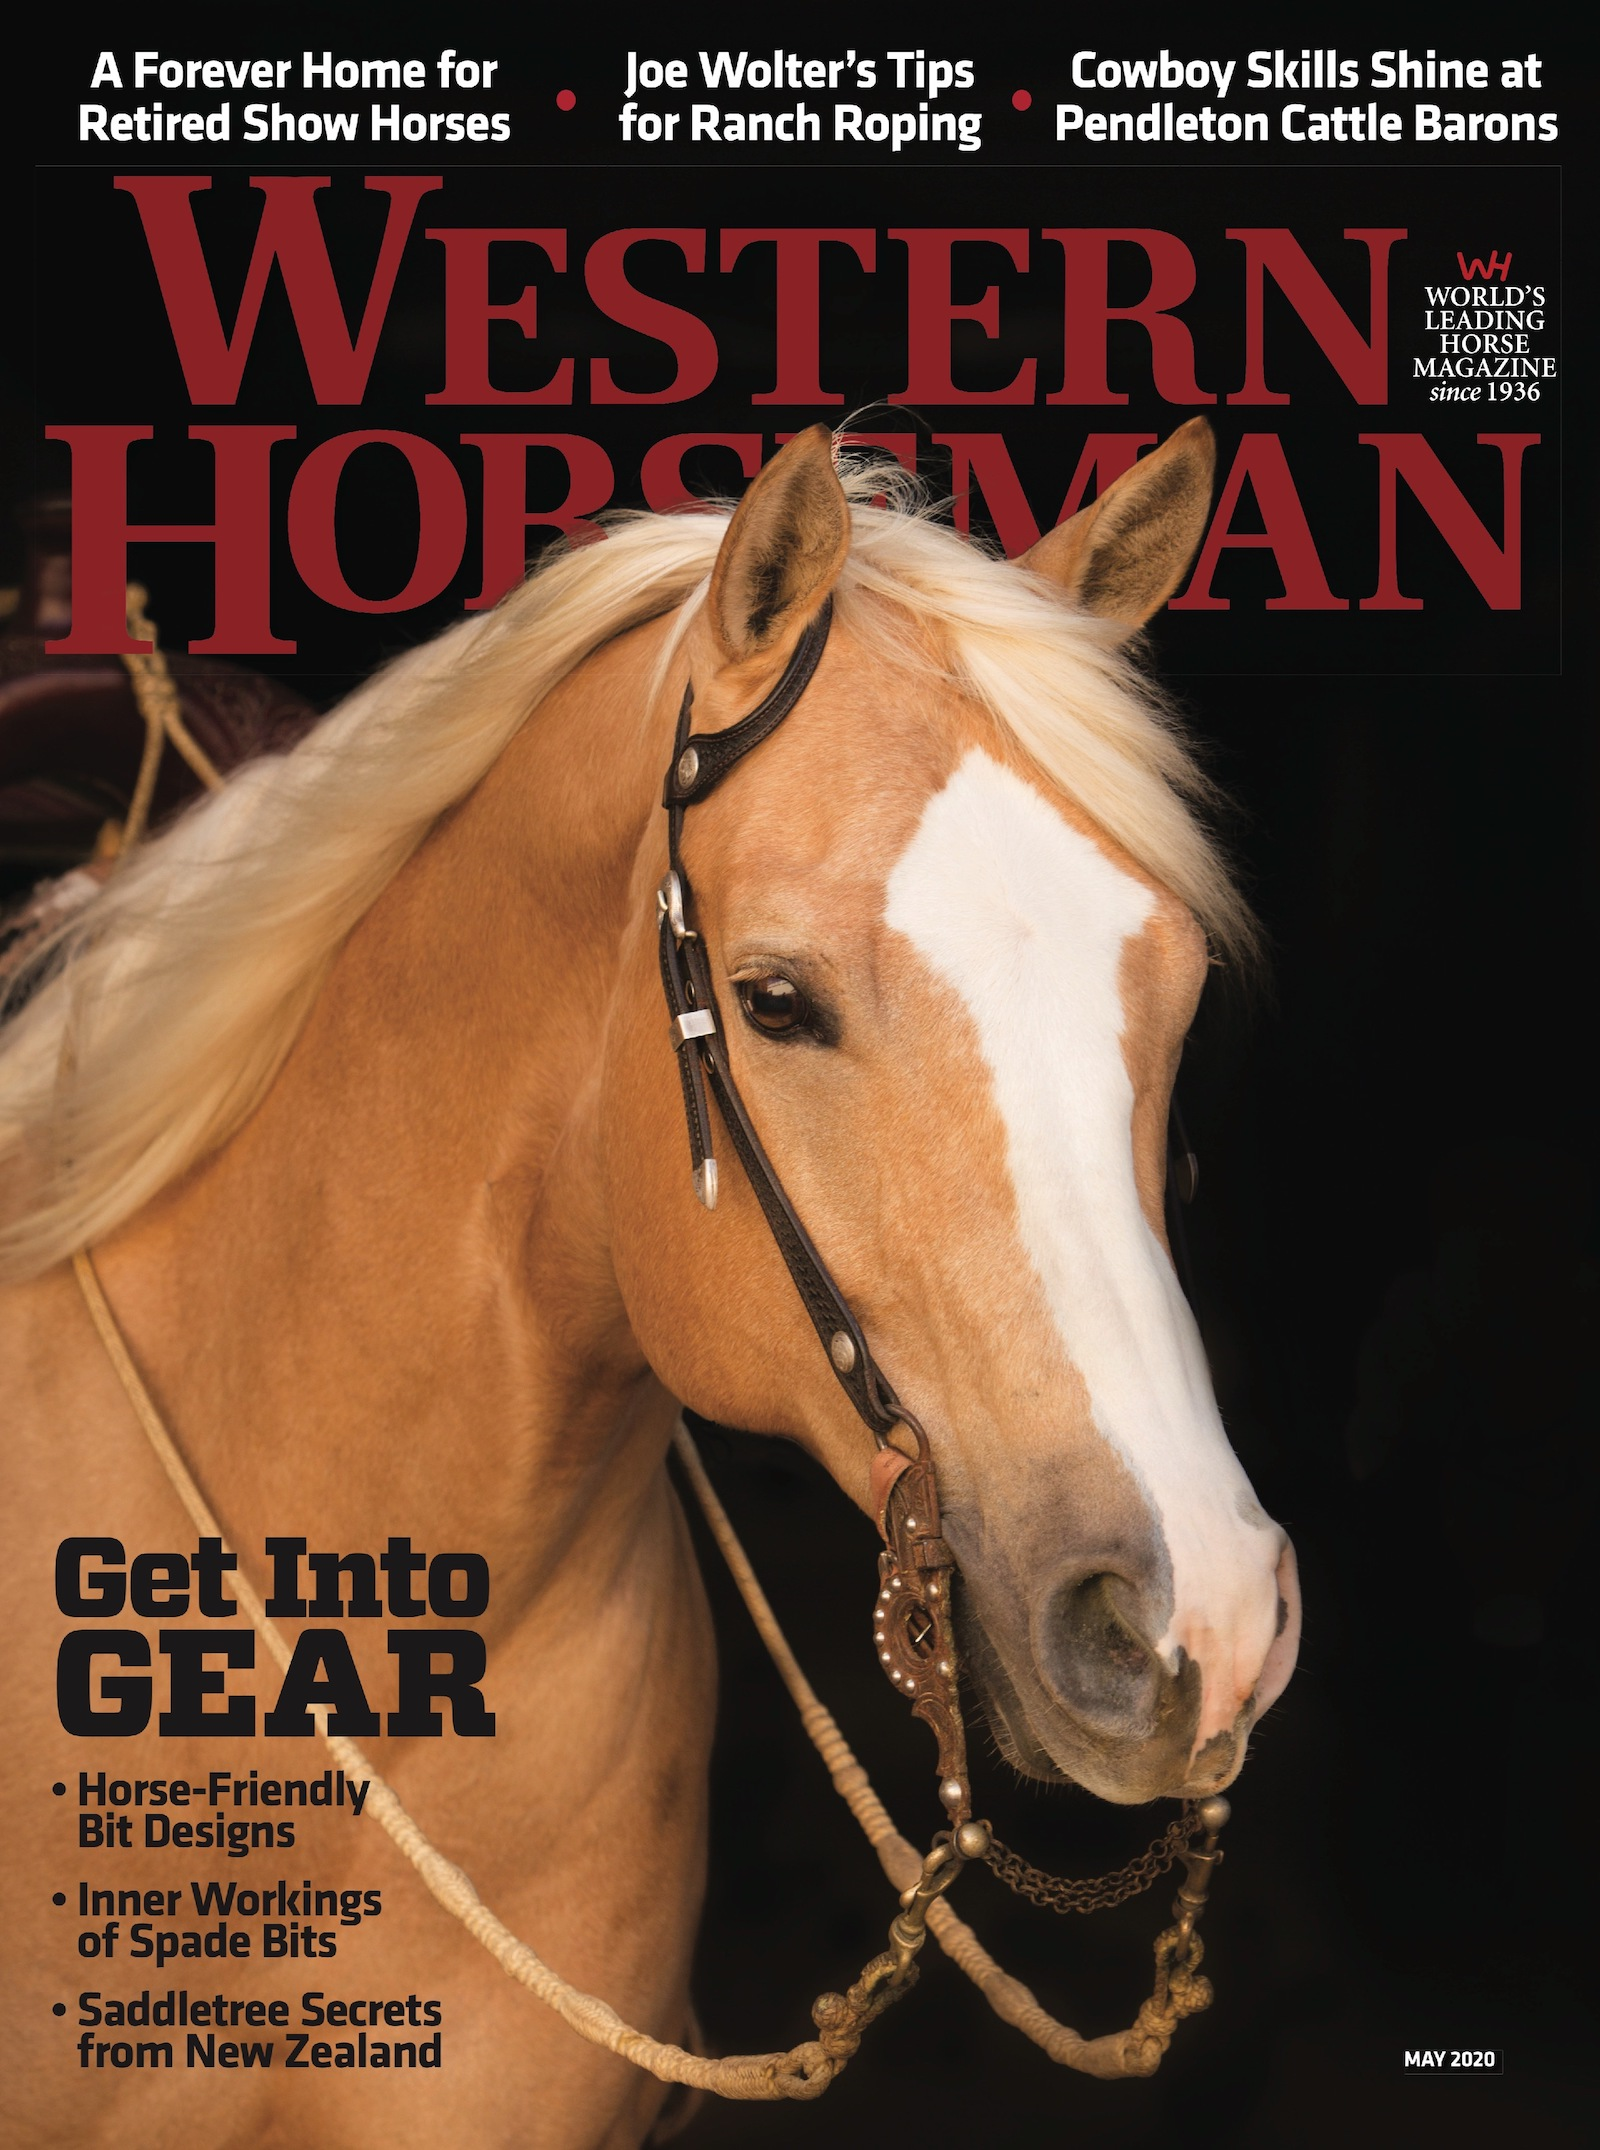 Western Horseman magazine May 2020 cover